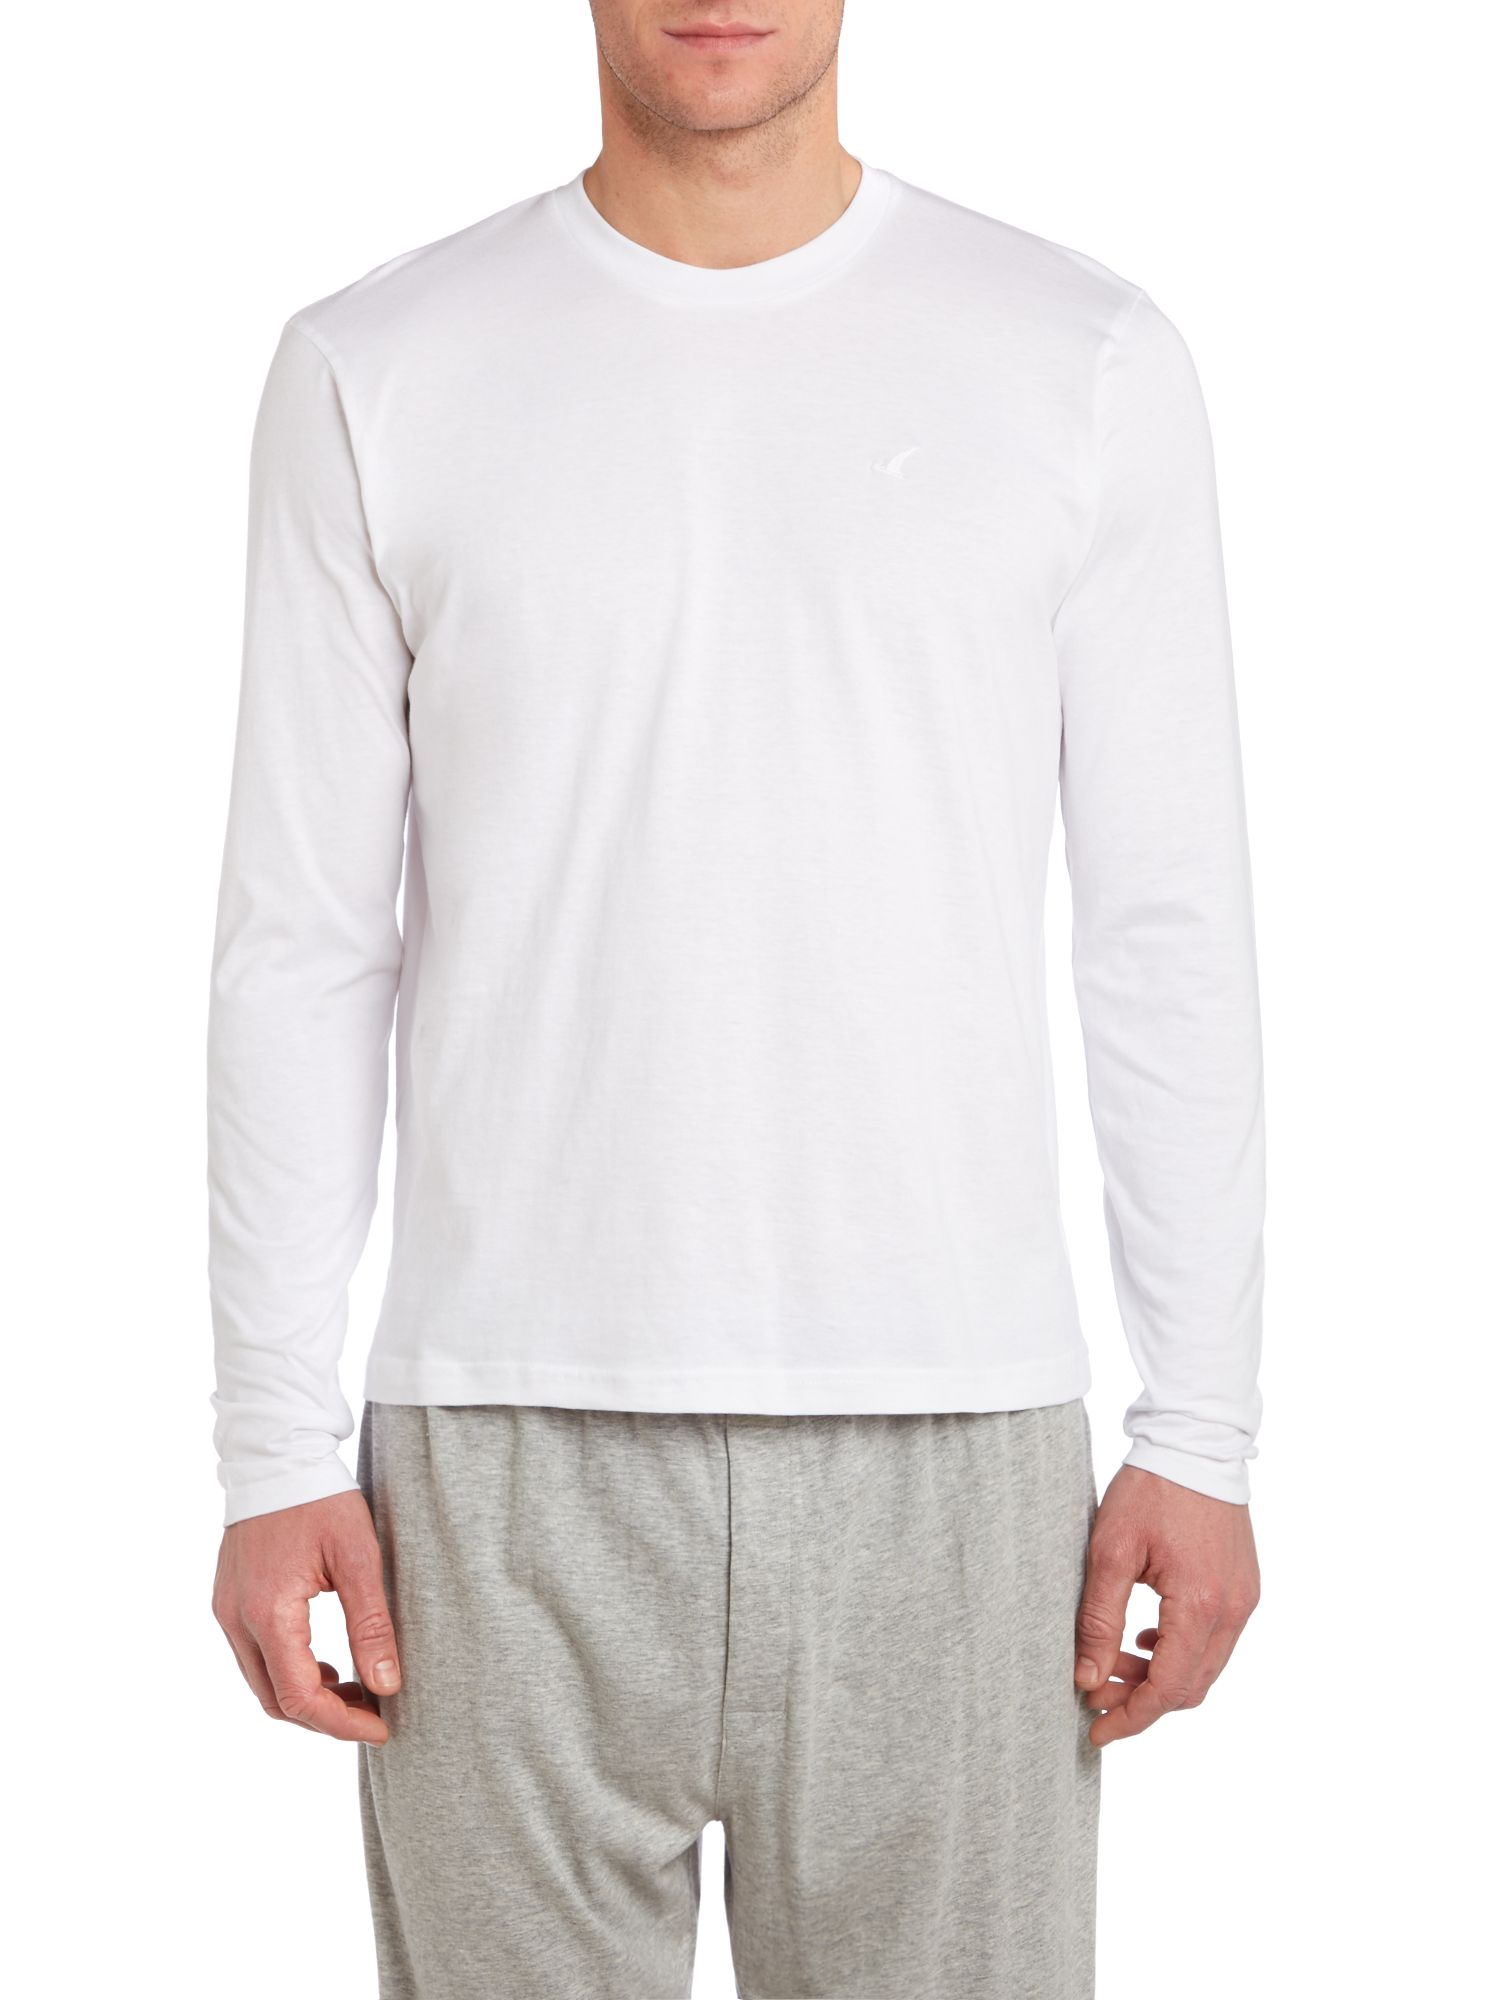 Nightwear long sleeve t-shirt